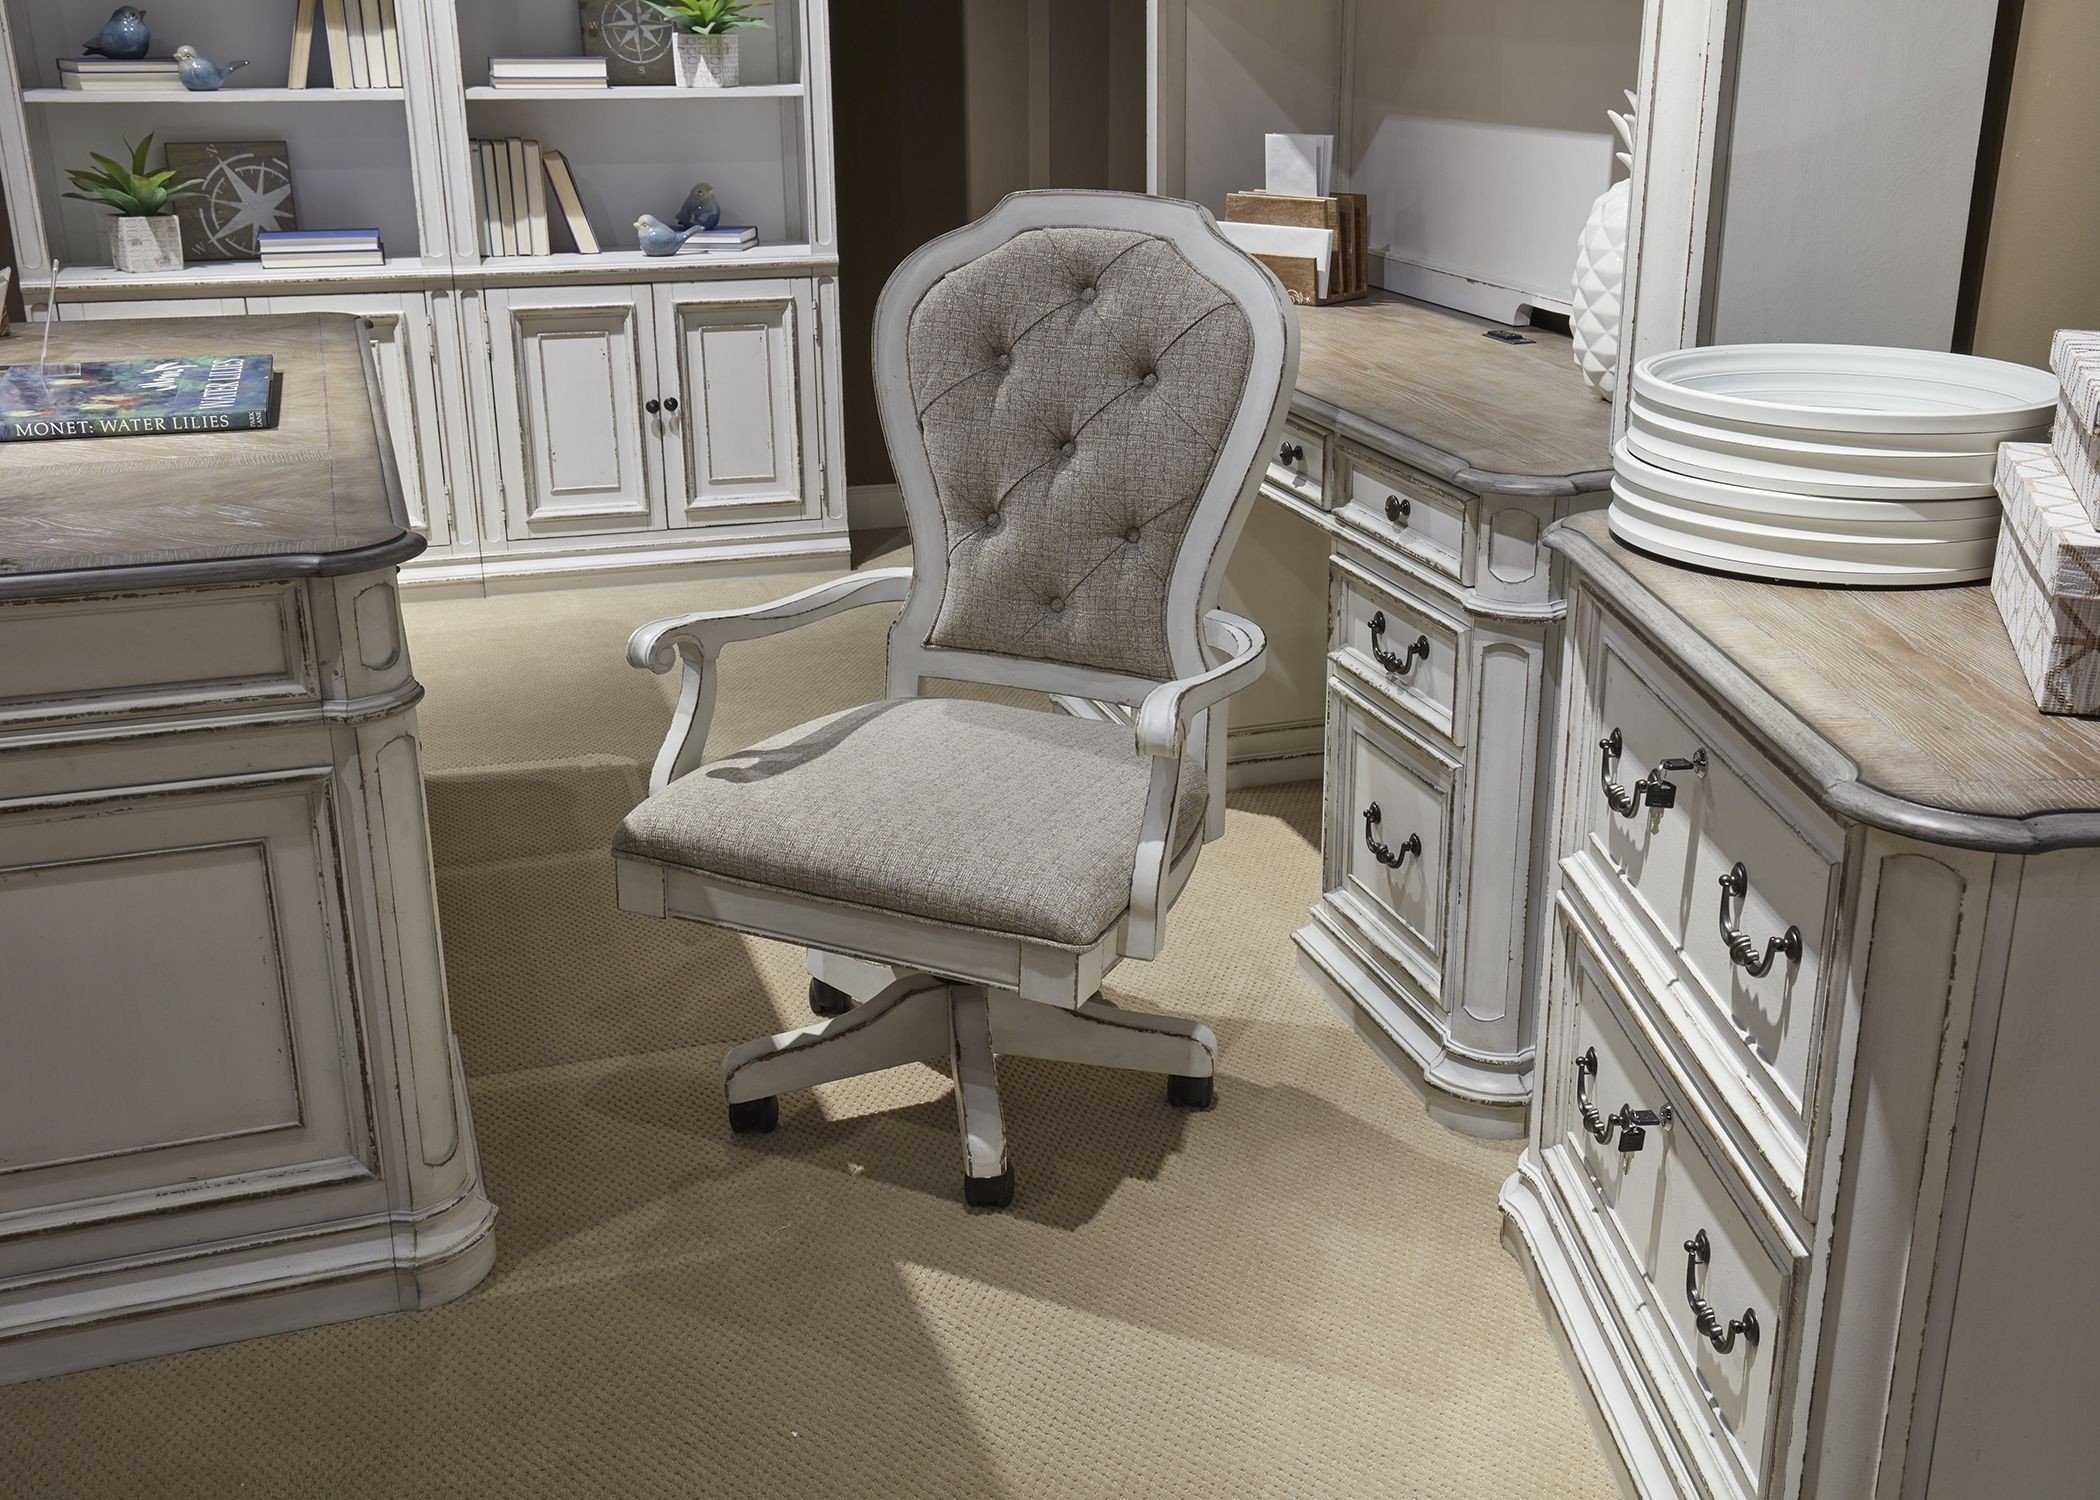 Magnolia Manor Antique White Jr Executive Desk Chair Media Gallery